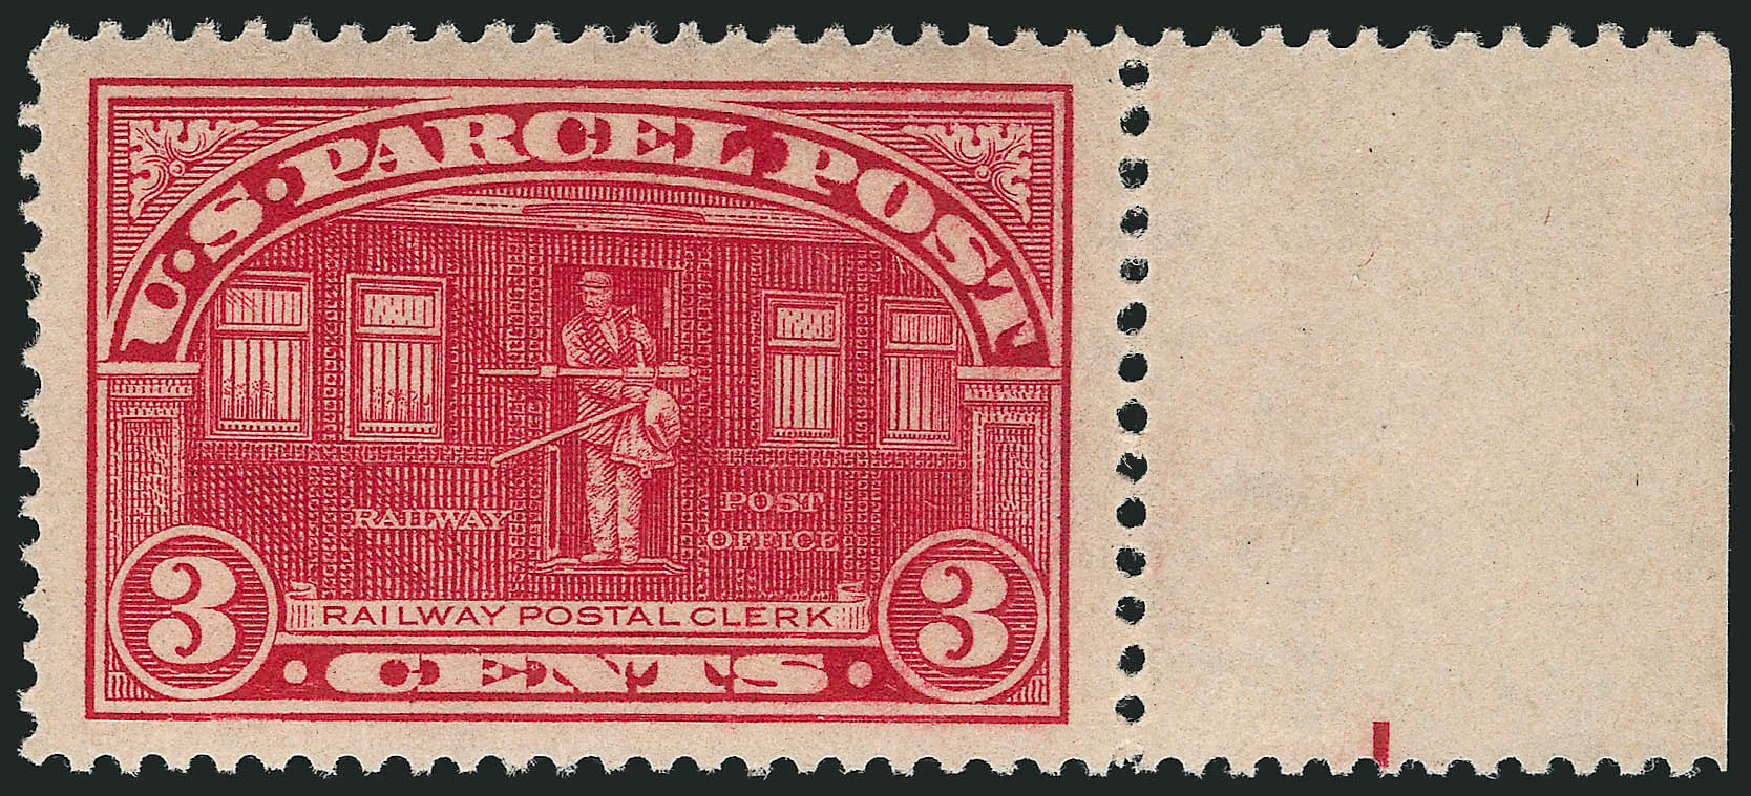 Value of US Stamps Scott Cat. # Q3 - 3c 1913 Parcel Post. Robert Siegel Auction Galleries, Mar 2014, Sale 1067, Lot 1741